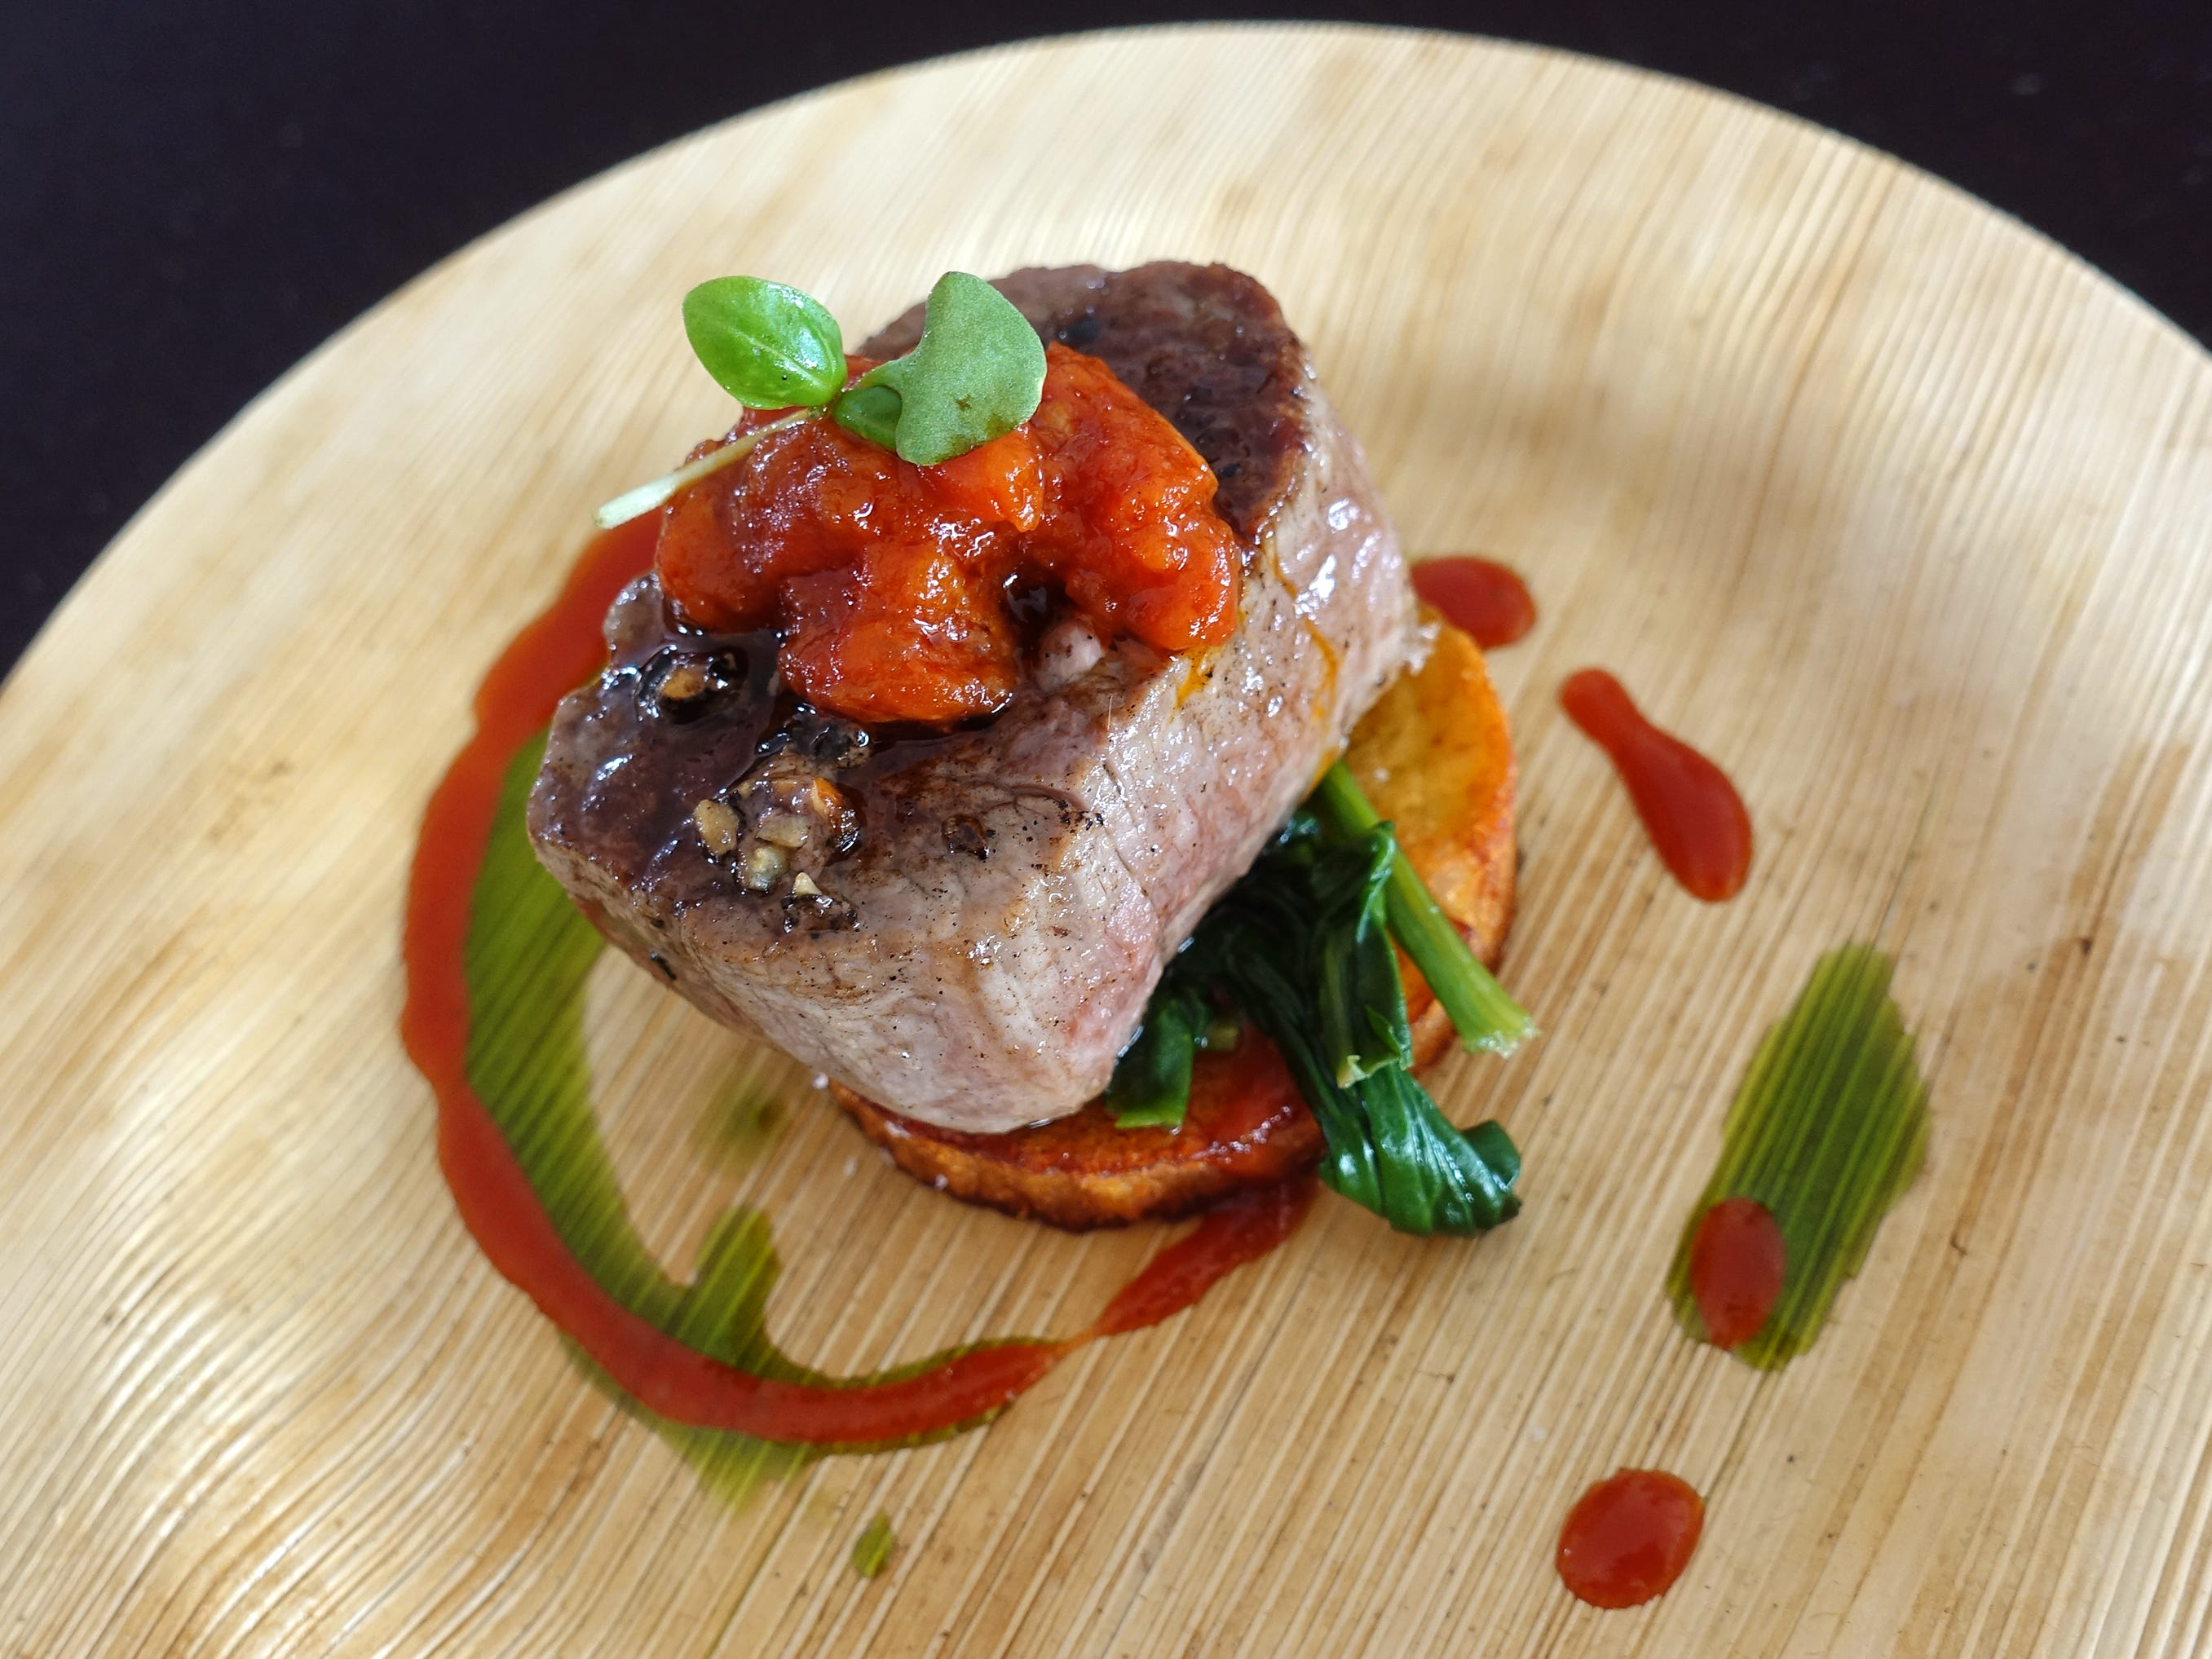 Seared beef tenderloin with crunchy potato, spinach, smokey tomato compote and basil oil from J&G Steakhouse at azcentral Wine & Food Experience 2018 at WestWorld of Scottsdale, Sunday, Nov. 4, 2018.